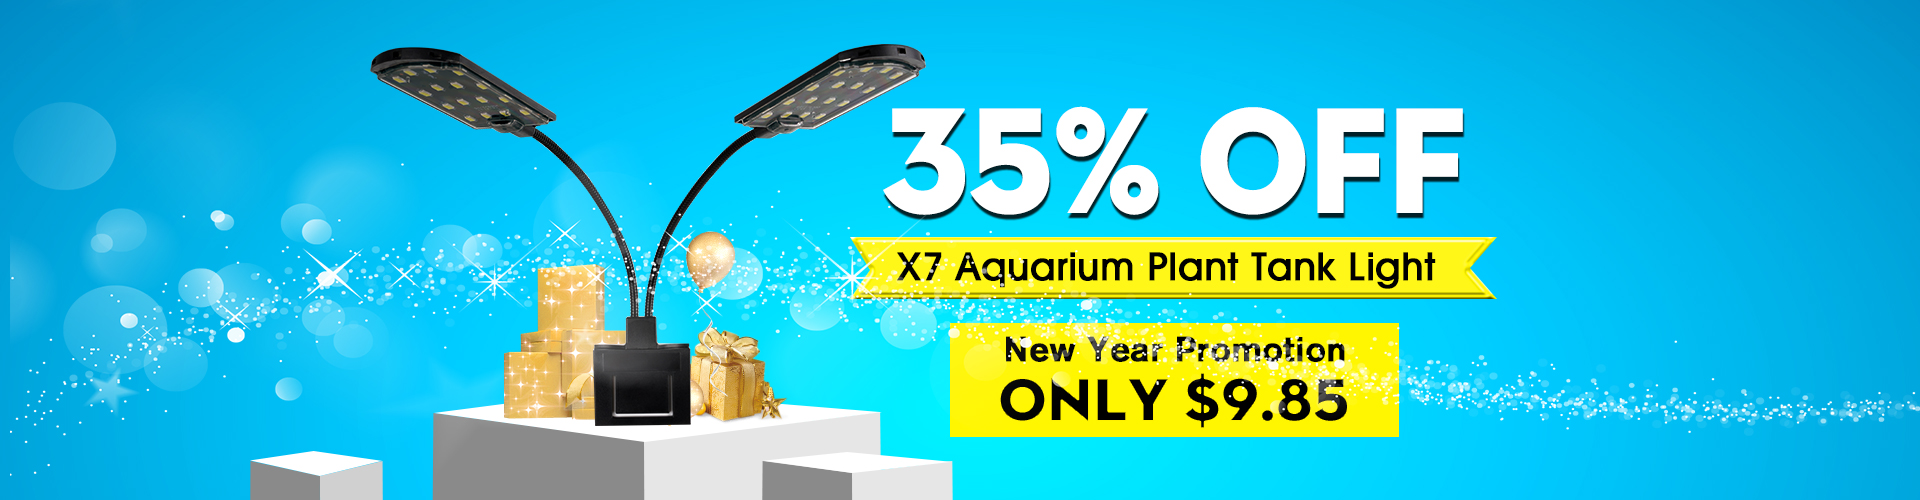 X7 Aquarium Plant Tank Light